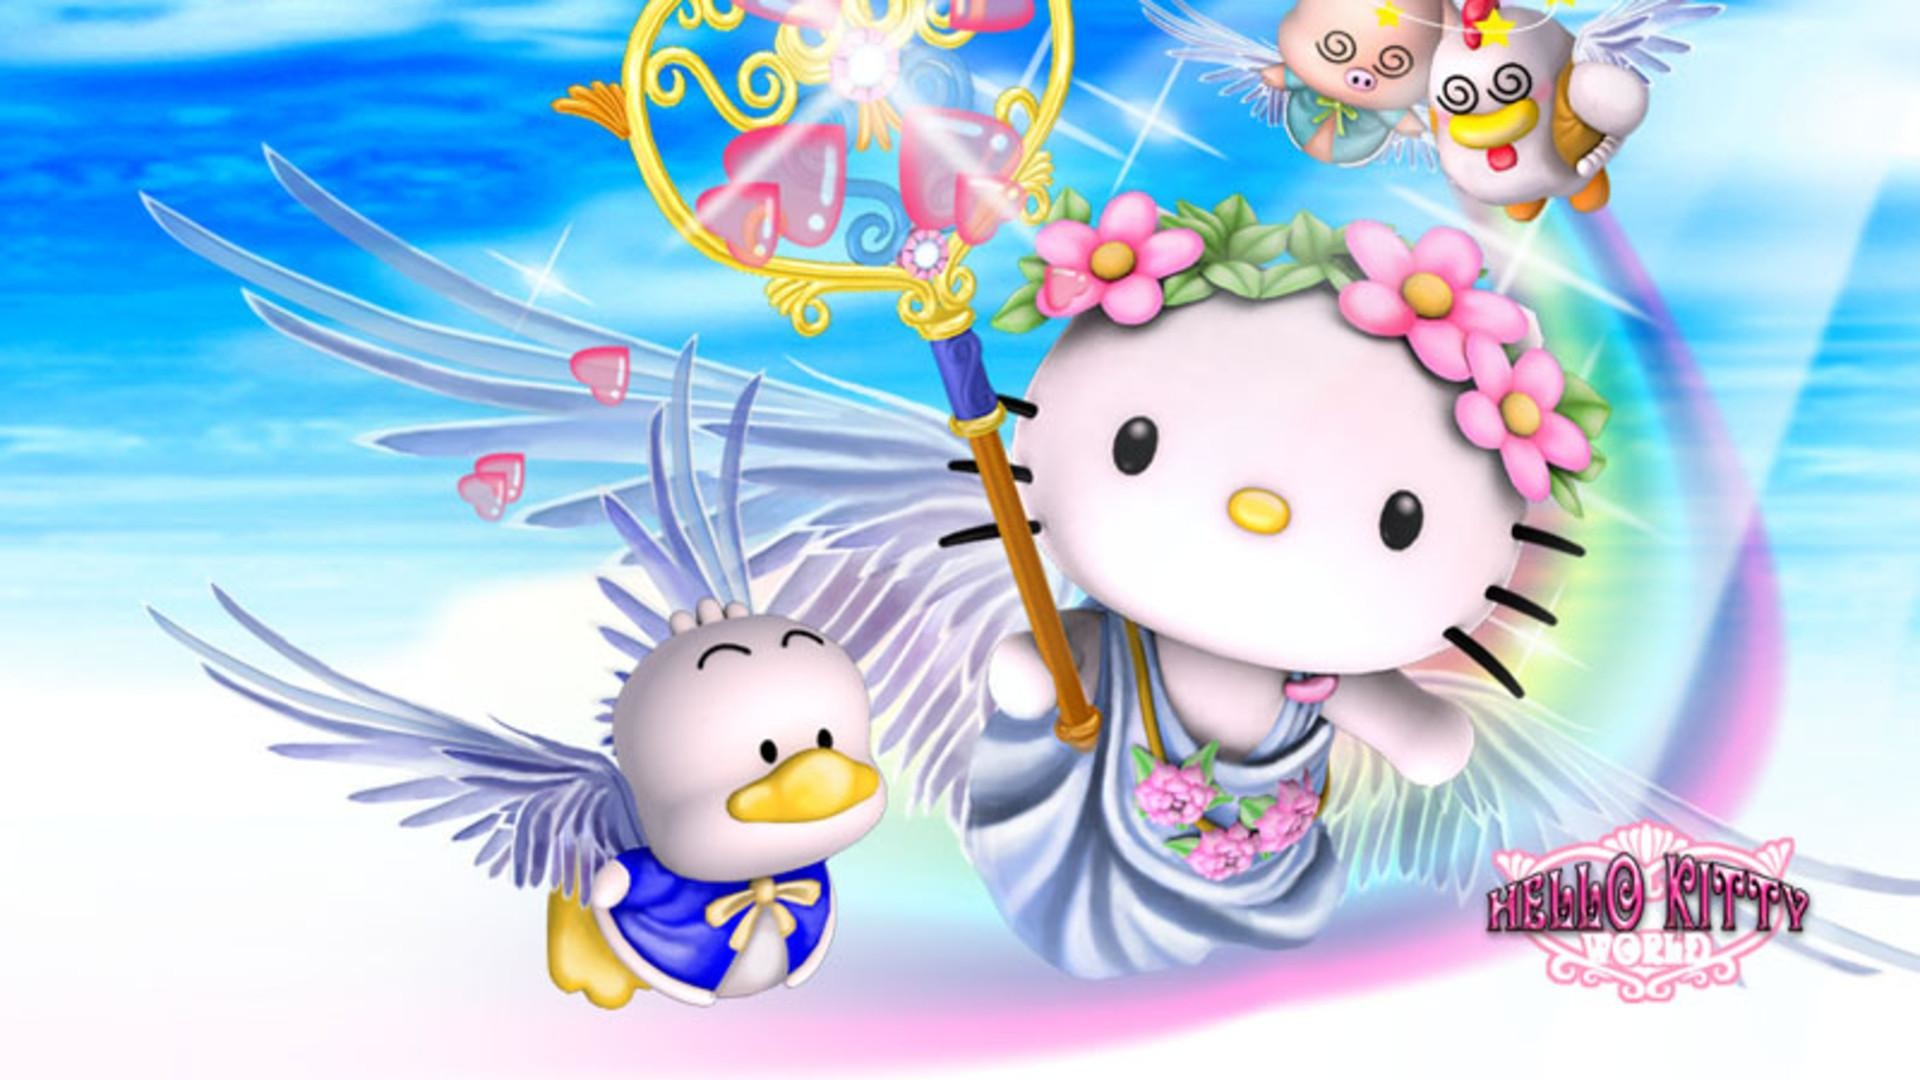 Cool Wallpaper Hello Kitty Zebra - 854784-full-size-hello-kitty-backgrounds-for-computers-1920x1080-for-iphone-5s  Pic_773118.jpg